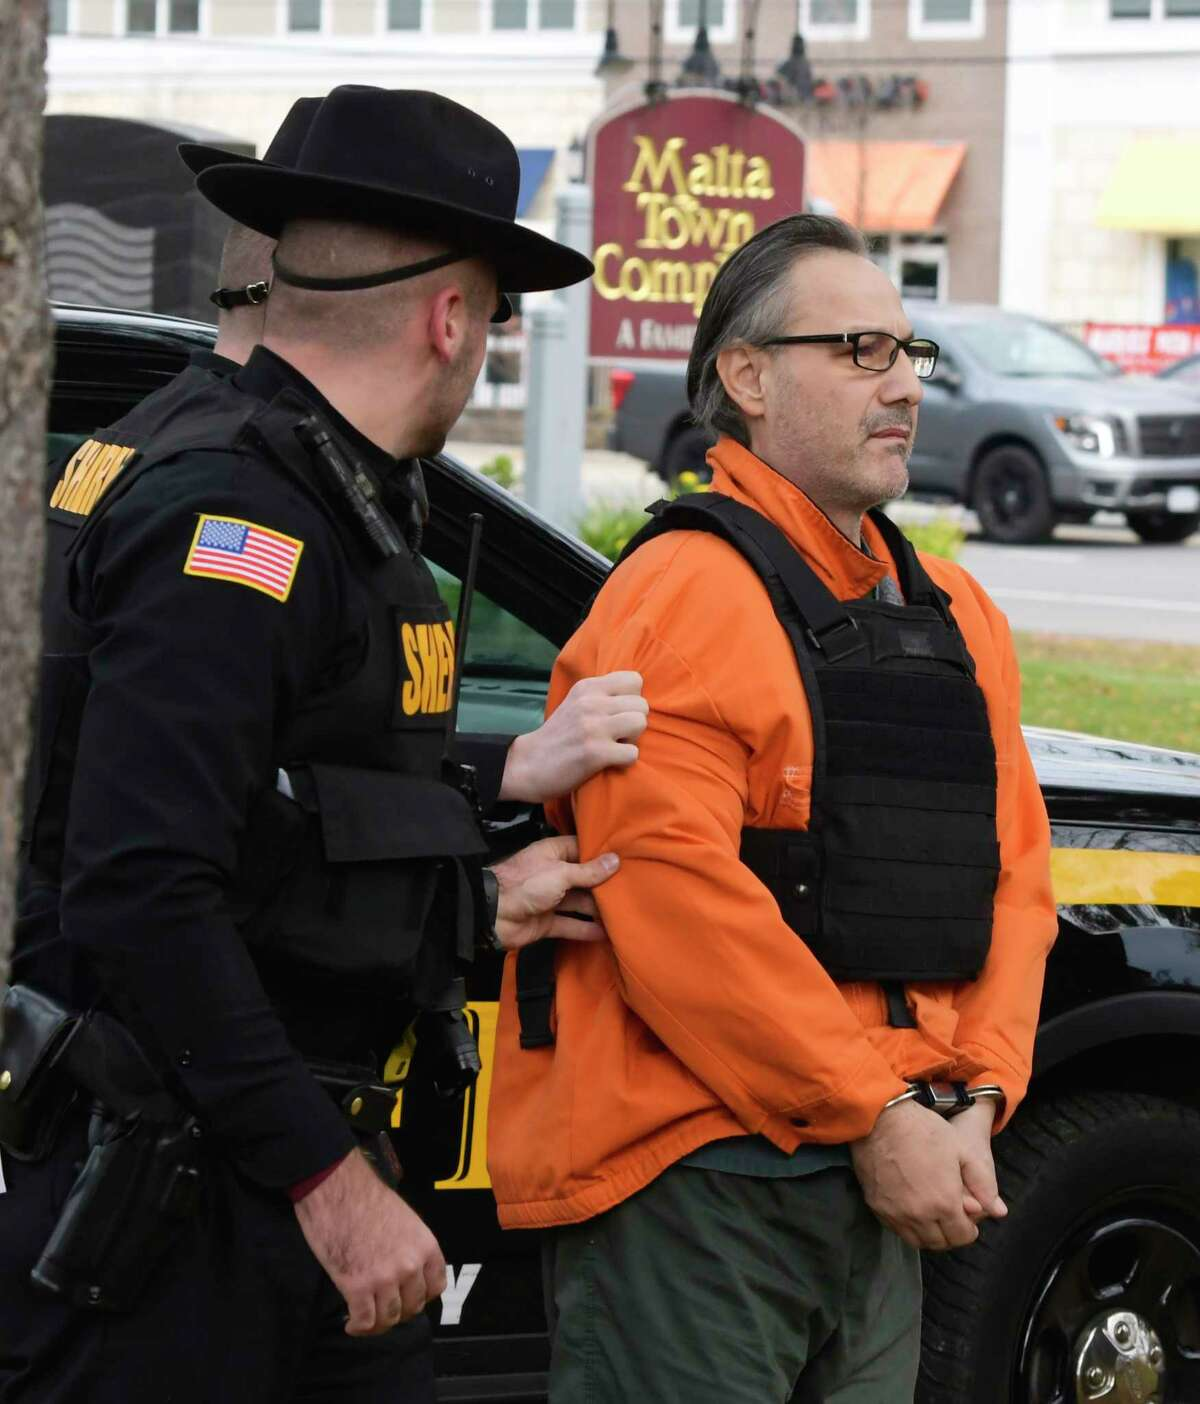 Georgios Kakavelos is brought into Malta Town Court for a court appearance on Tuesday, Nov. 5, 2019, in Malta, N.Y. Kakavelos and a co-defendant have been charged with murder and concealment of a corpse. (Paul Buckowski/Times Union)